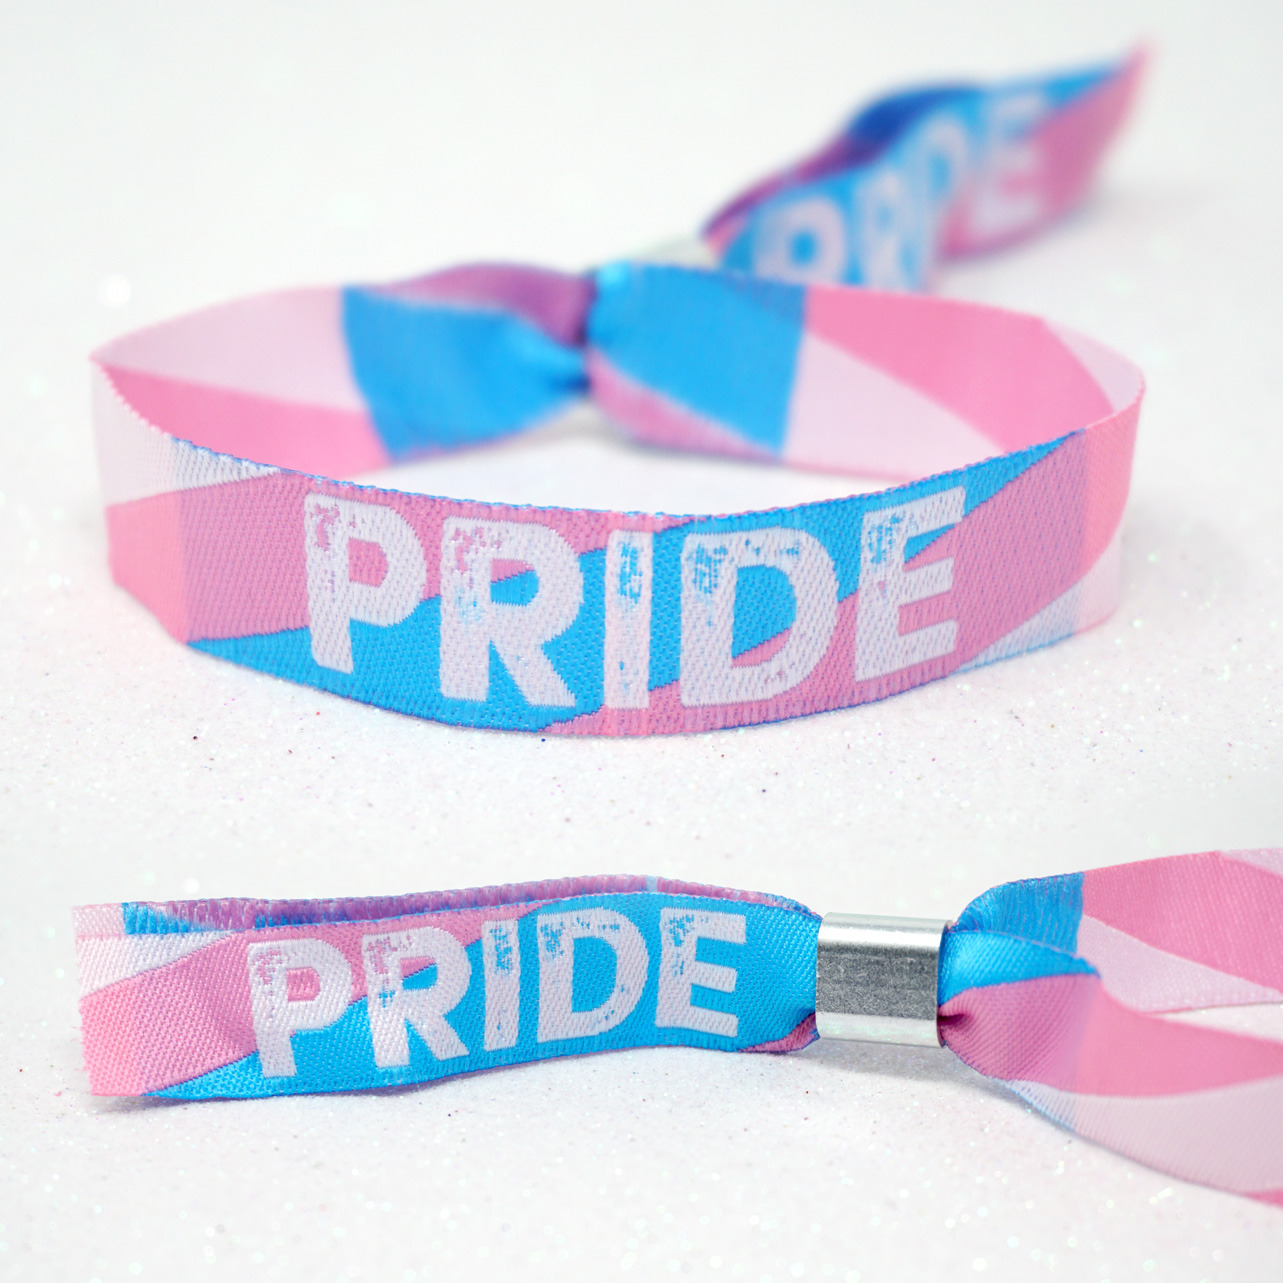 transgender pride parade wristbands